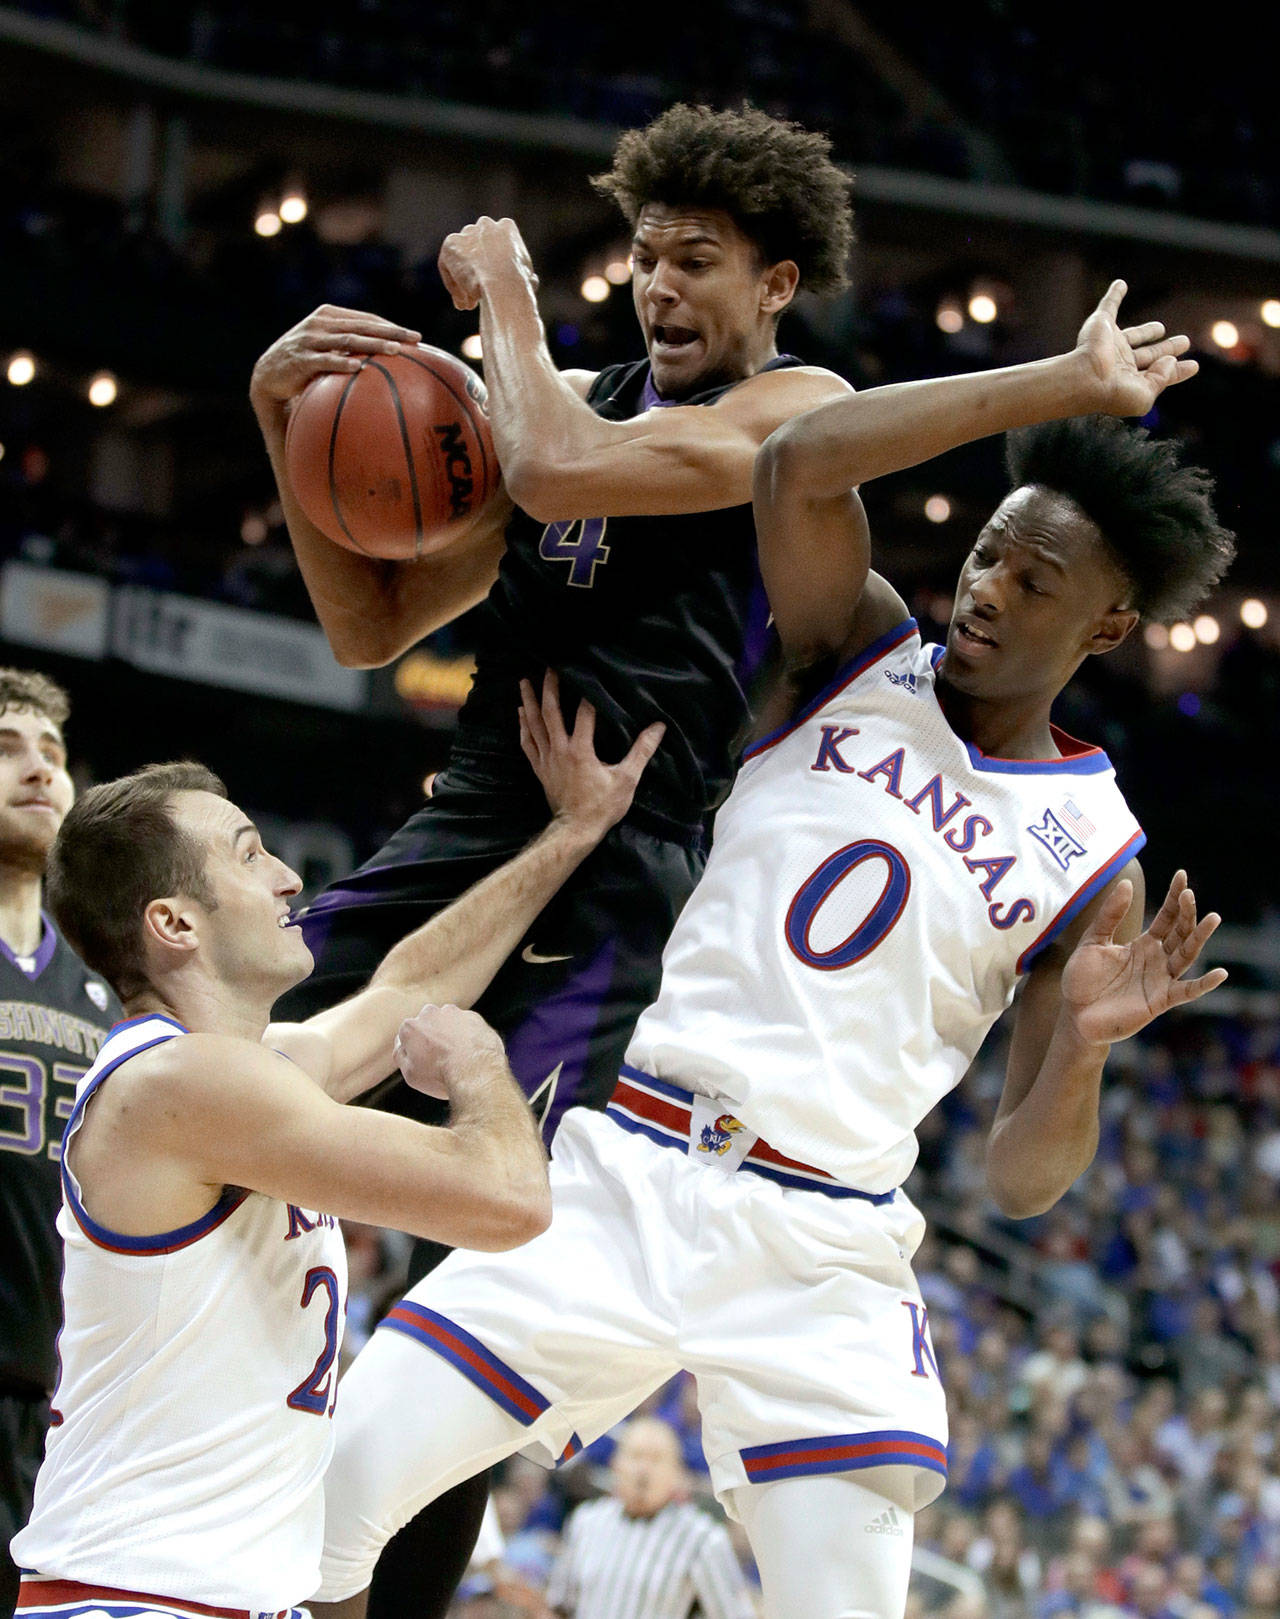 Washington's Matisse Thybulle (center) beats Kansas' Clay Young (left) and Marcus Garrett (0) to a rebound during the first half of a game Dec. 6, 2017, in Kansas City, Mo. (AP Photo/Charlie Riedel)